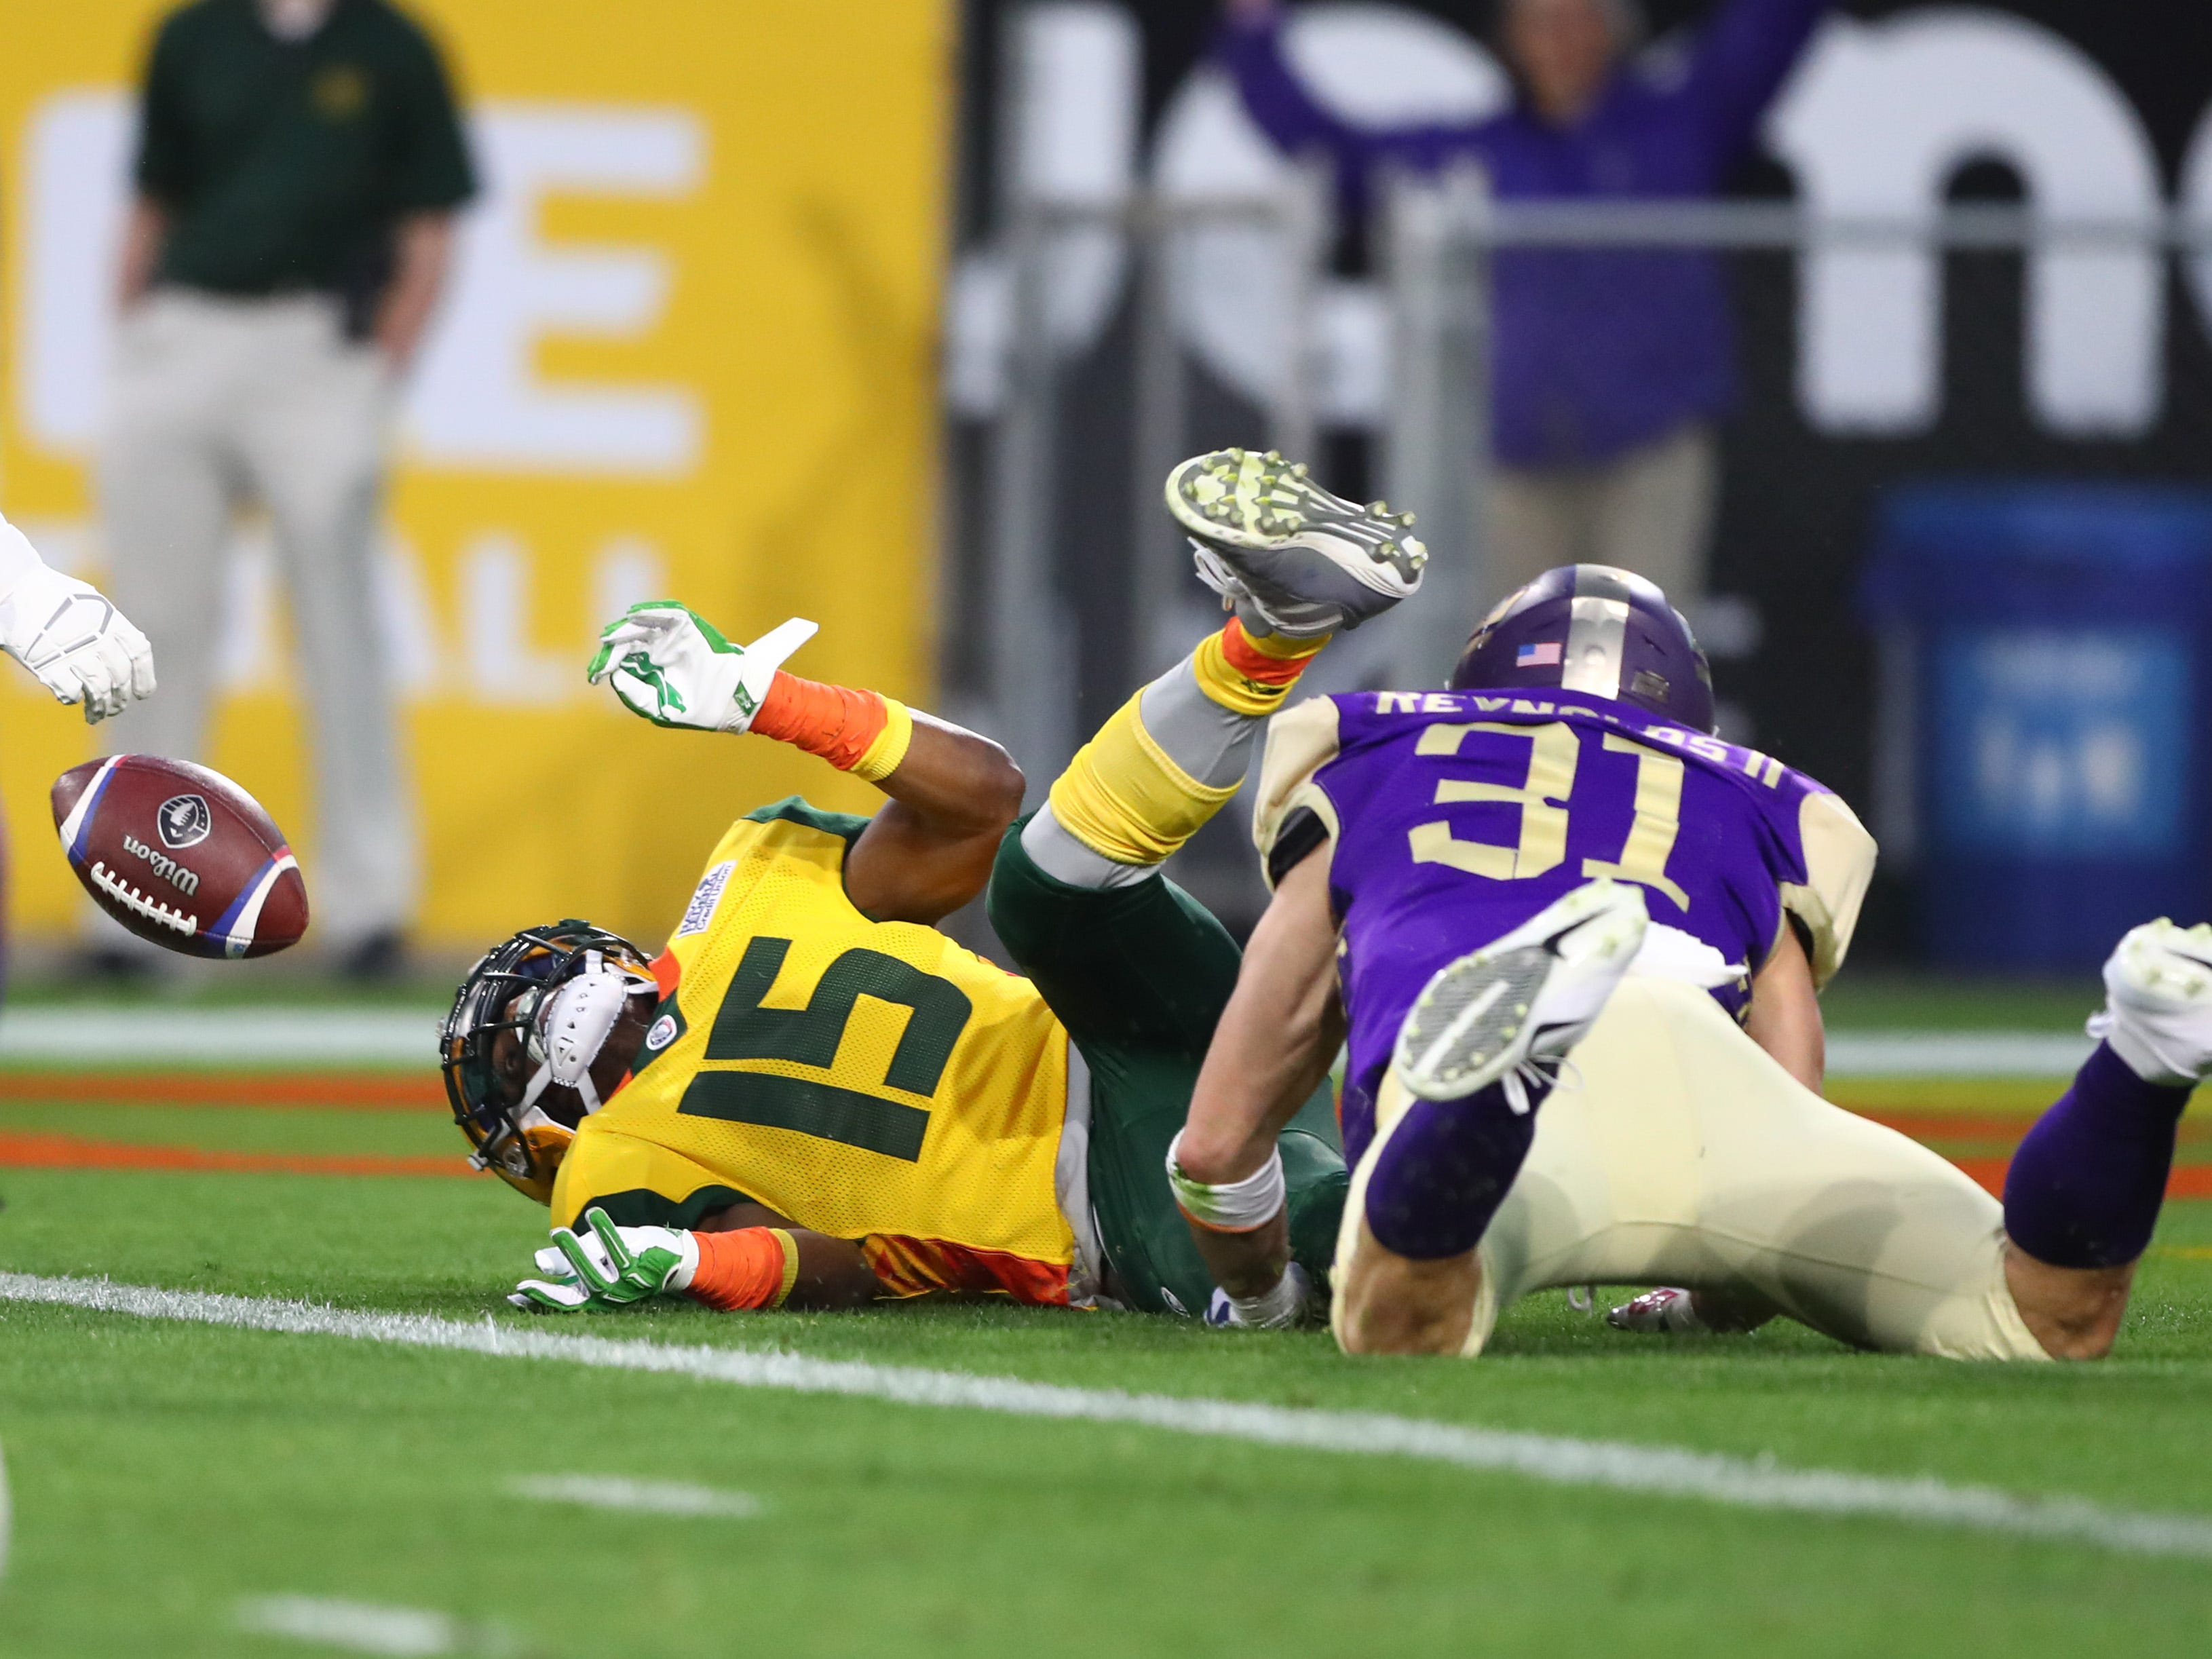 Mar 3, 2019; Tempe, AZ, USA; Arizona Hotshots wide receiver Rashad Ross (15) is tackled in the end zone by Atlanta Legends defensive back Ed Reynolds, Jr. (31) for a safety during the first half of an AAF football game at Sun Devil Stadium.